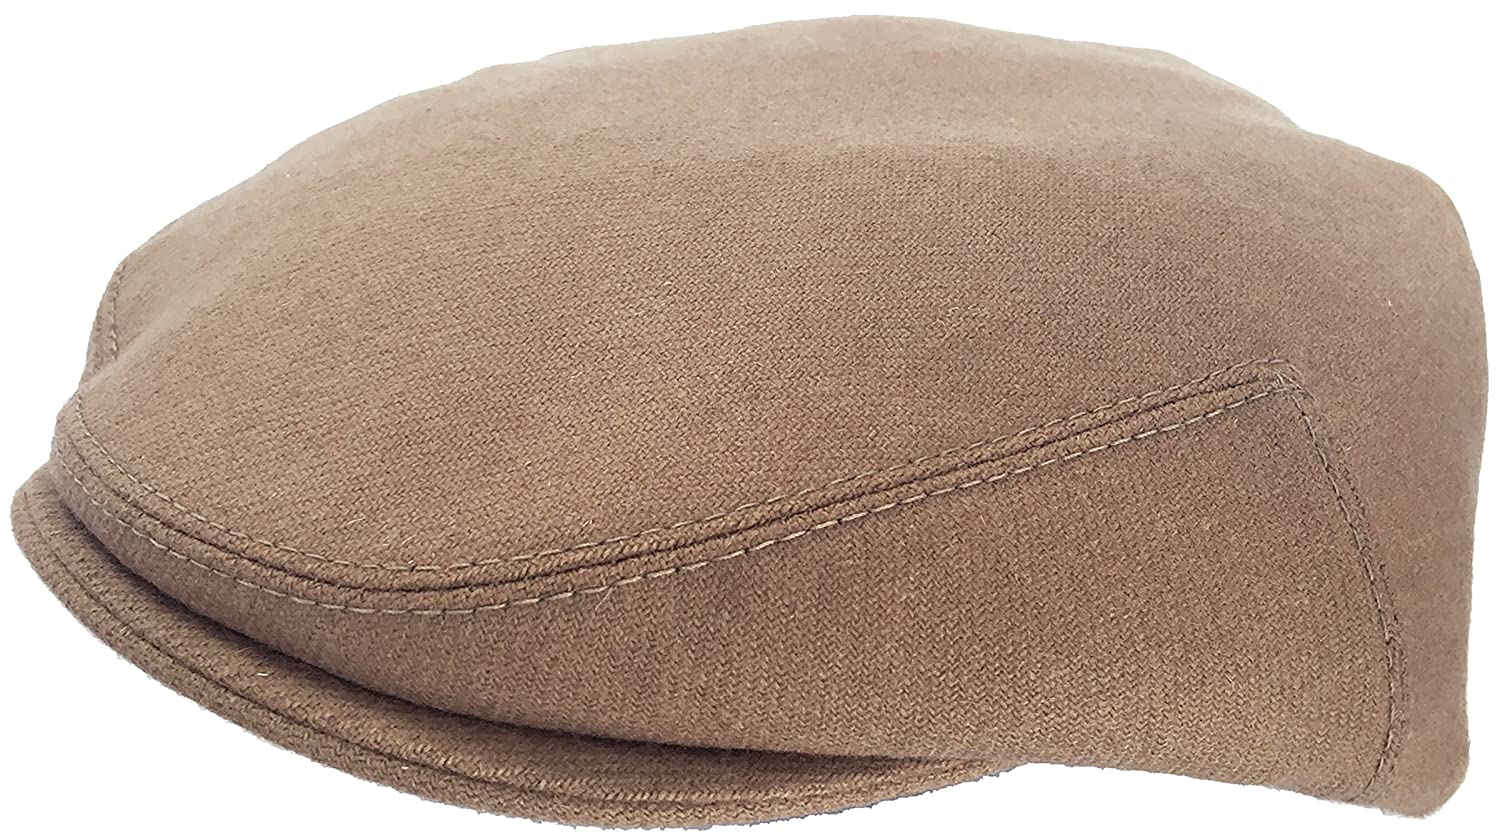 eafbd34b4e7 Amazon.com  Headchange Made in USA 100% Wool Ivy Scally Cap Driver Hat   Clothing